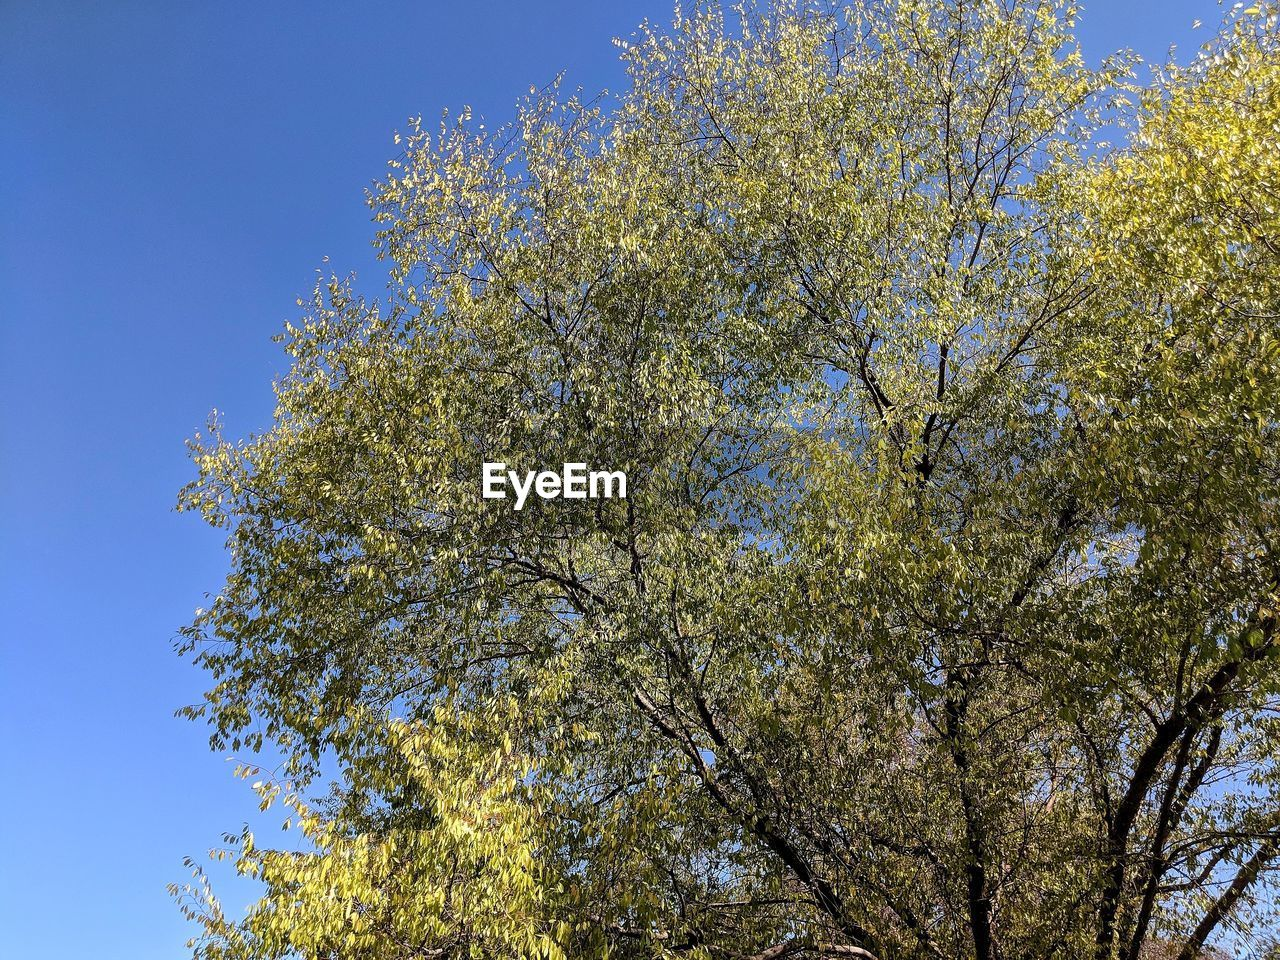 tree, plant, low angle view, growth, beauty in nature, sky, branch, nature, no people, tranquility, day, clear sky, outdoors, flowering plant, flower, blue, yellow, sunlight, blossom, springtime, spring, tree canopy